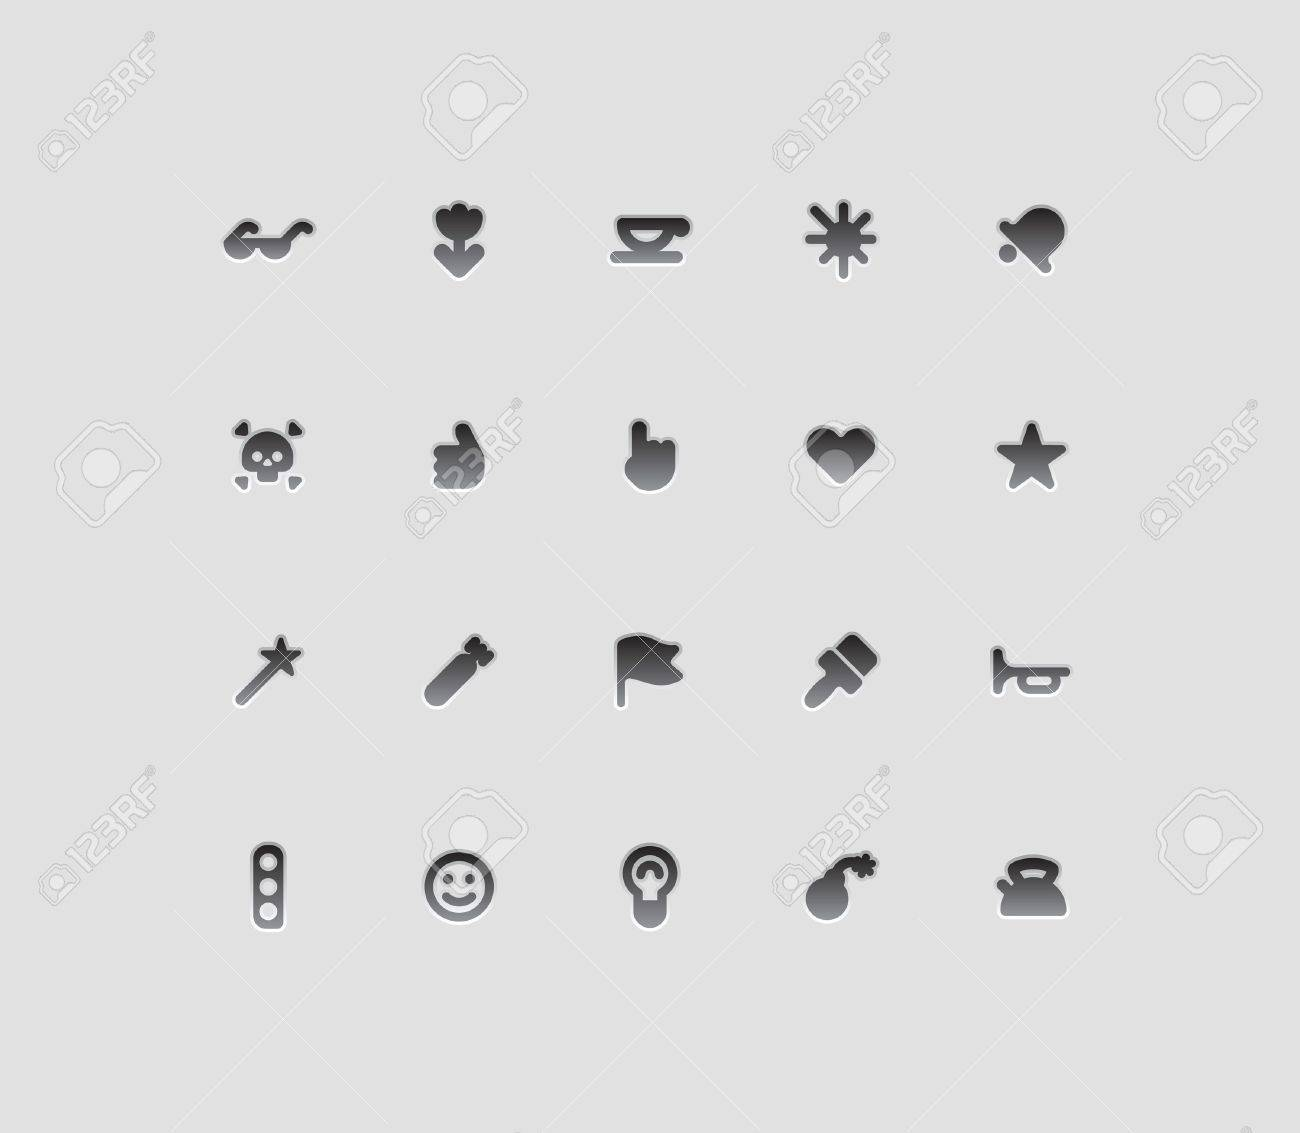 Miscellaneous interface icons  Vector illustration Stock Vector - 15858467